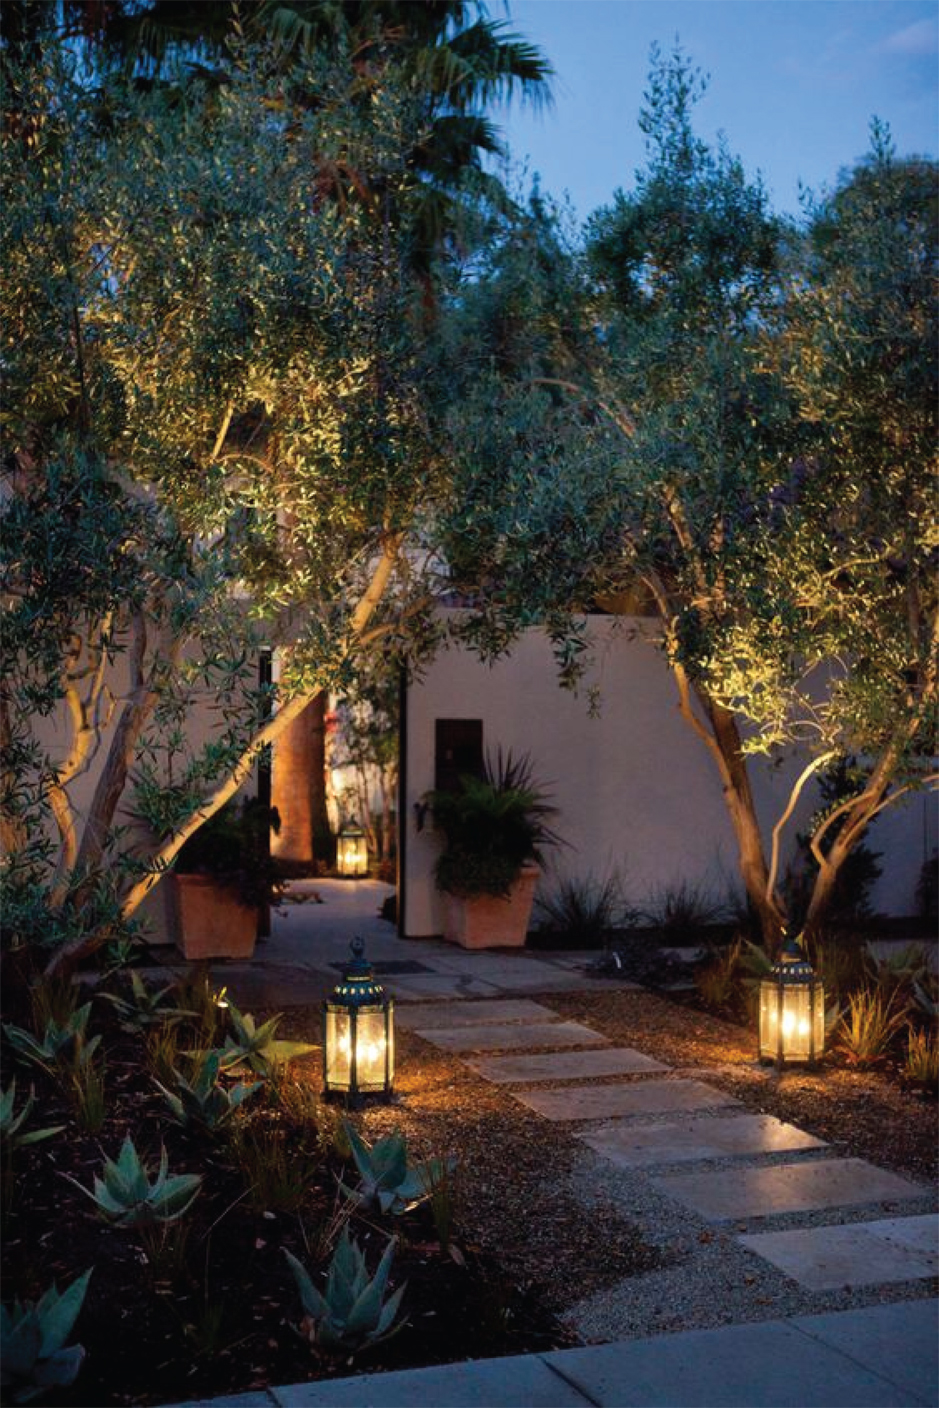 How to Light your Outdoor Space - Entry Lighting  |  Akin Design Studio Blog